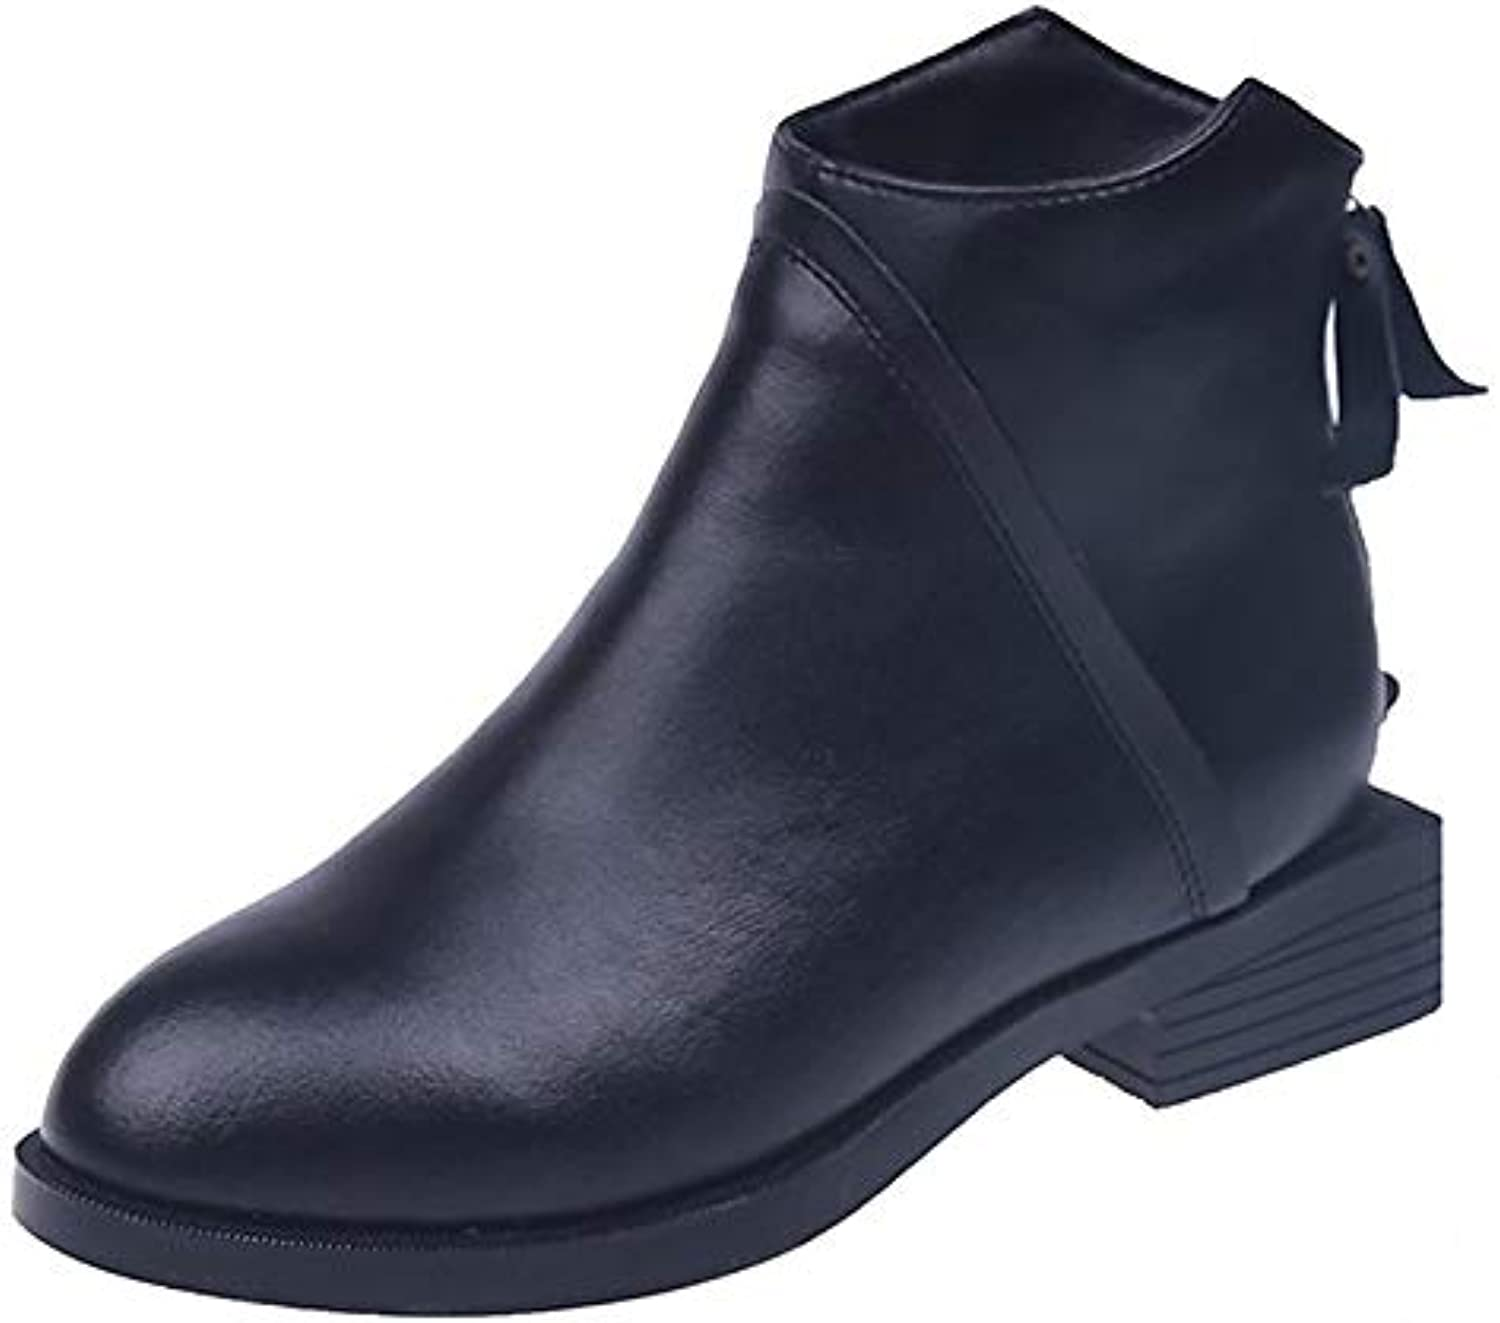 Women's Bootie PU(Polyurethane) Fall & Winter Casual Boots Low Heel Round Toe Booties Ankle Boots Black